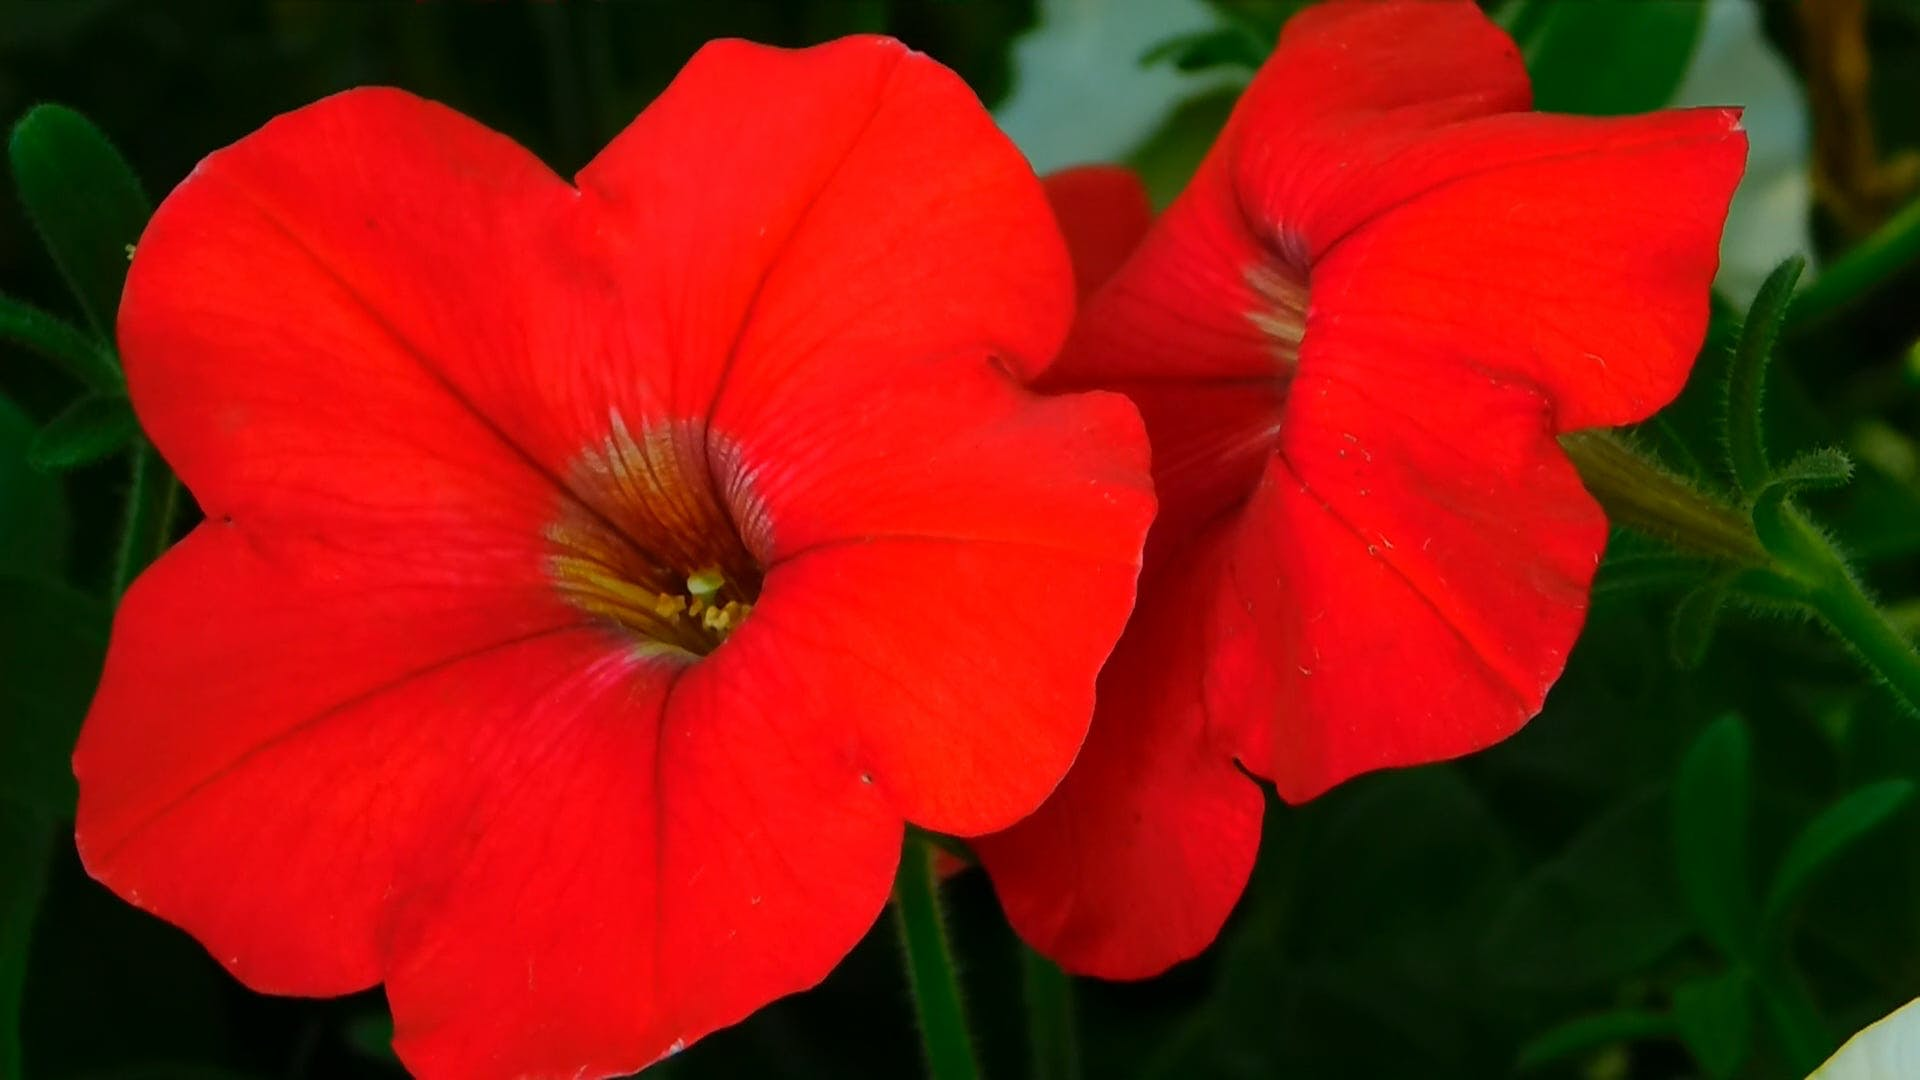 Fascinating Red Flowers